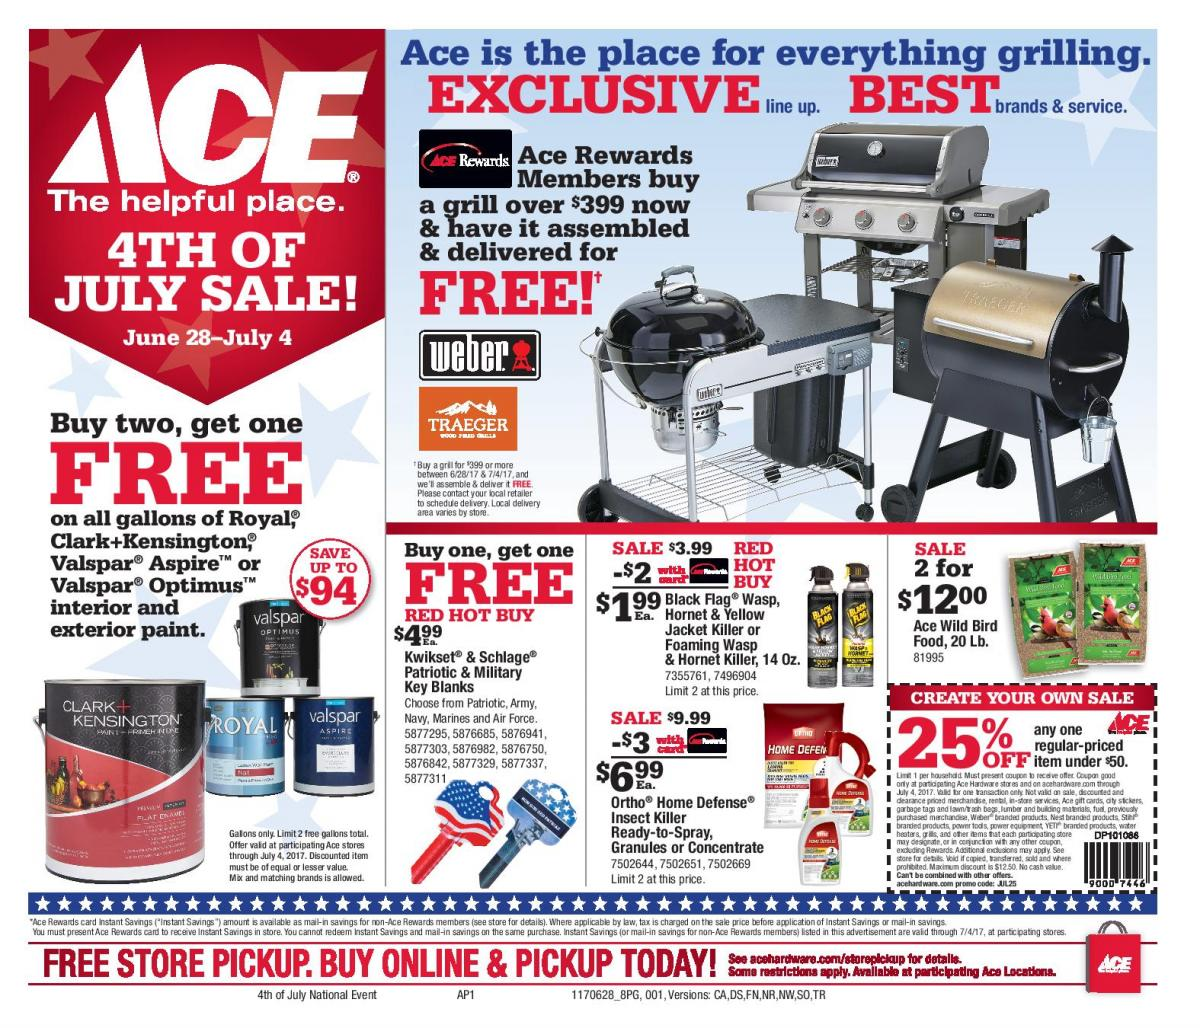 July 2017 4th of July Sale 8 Page Circular - SO-page-001